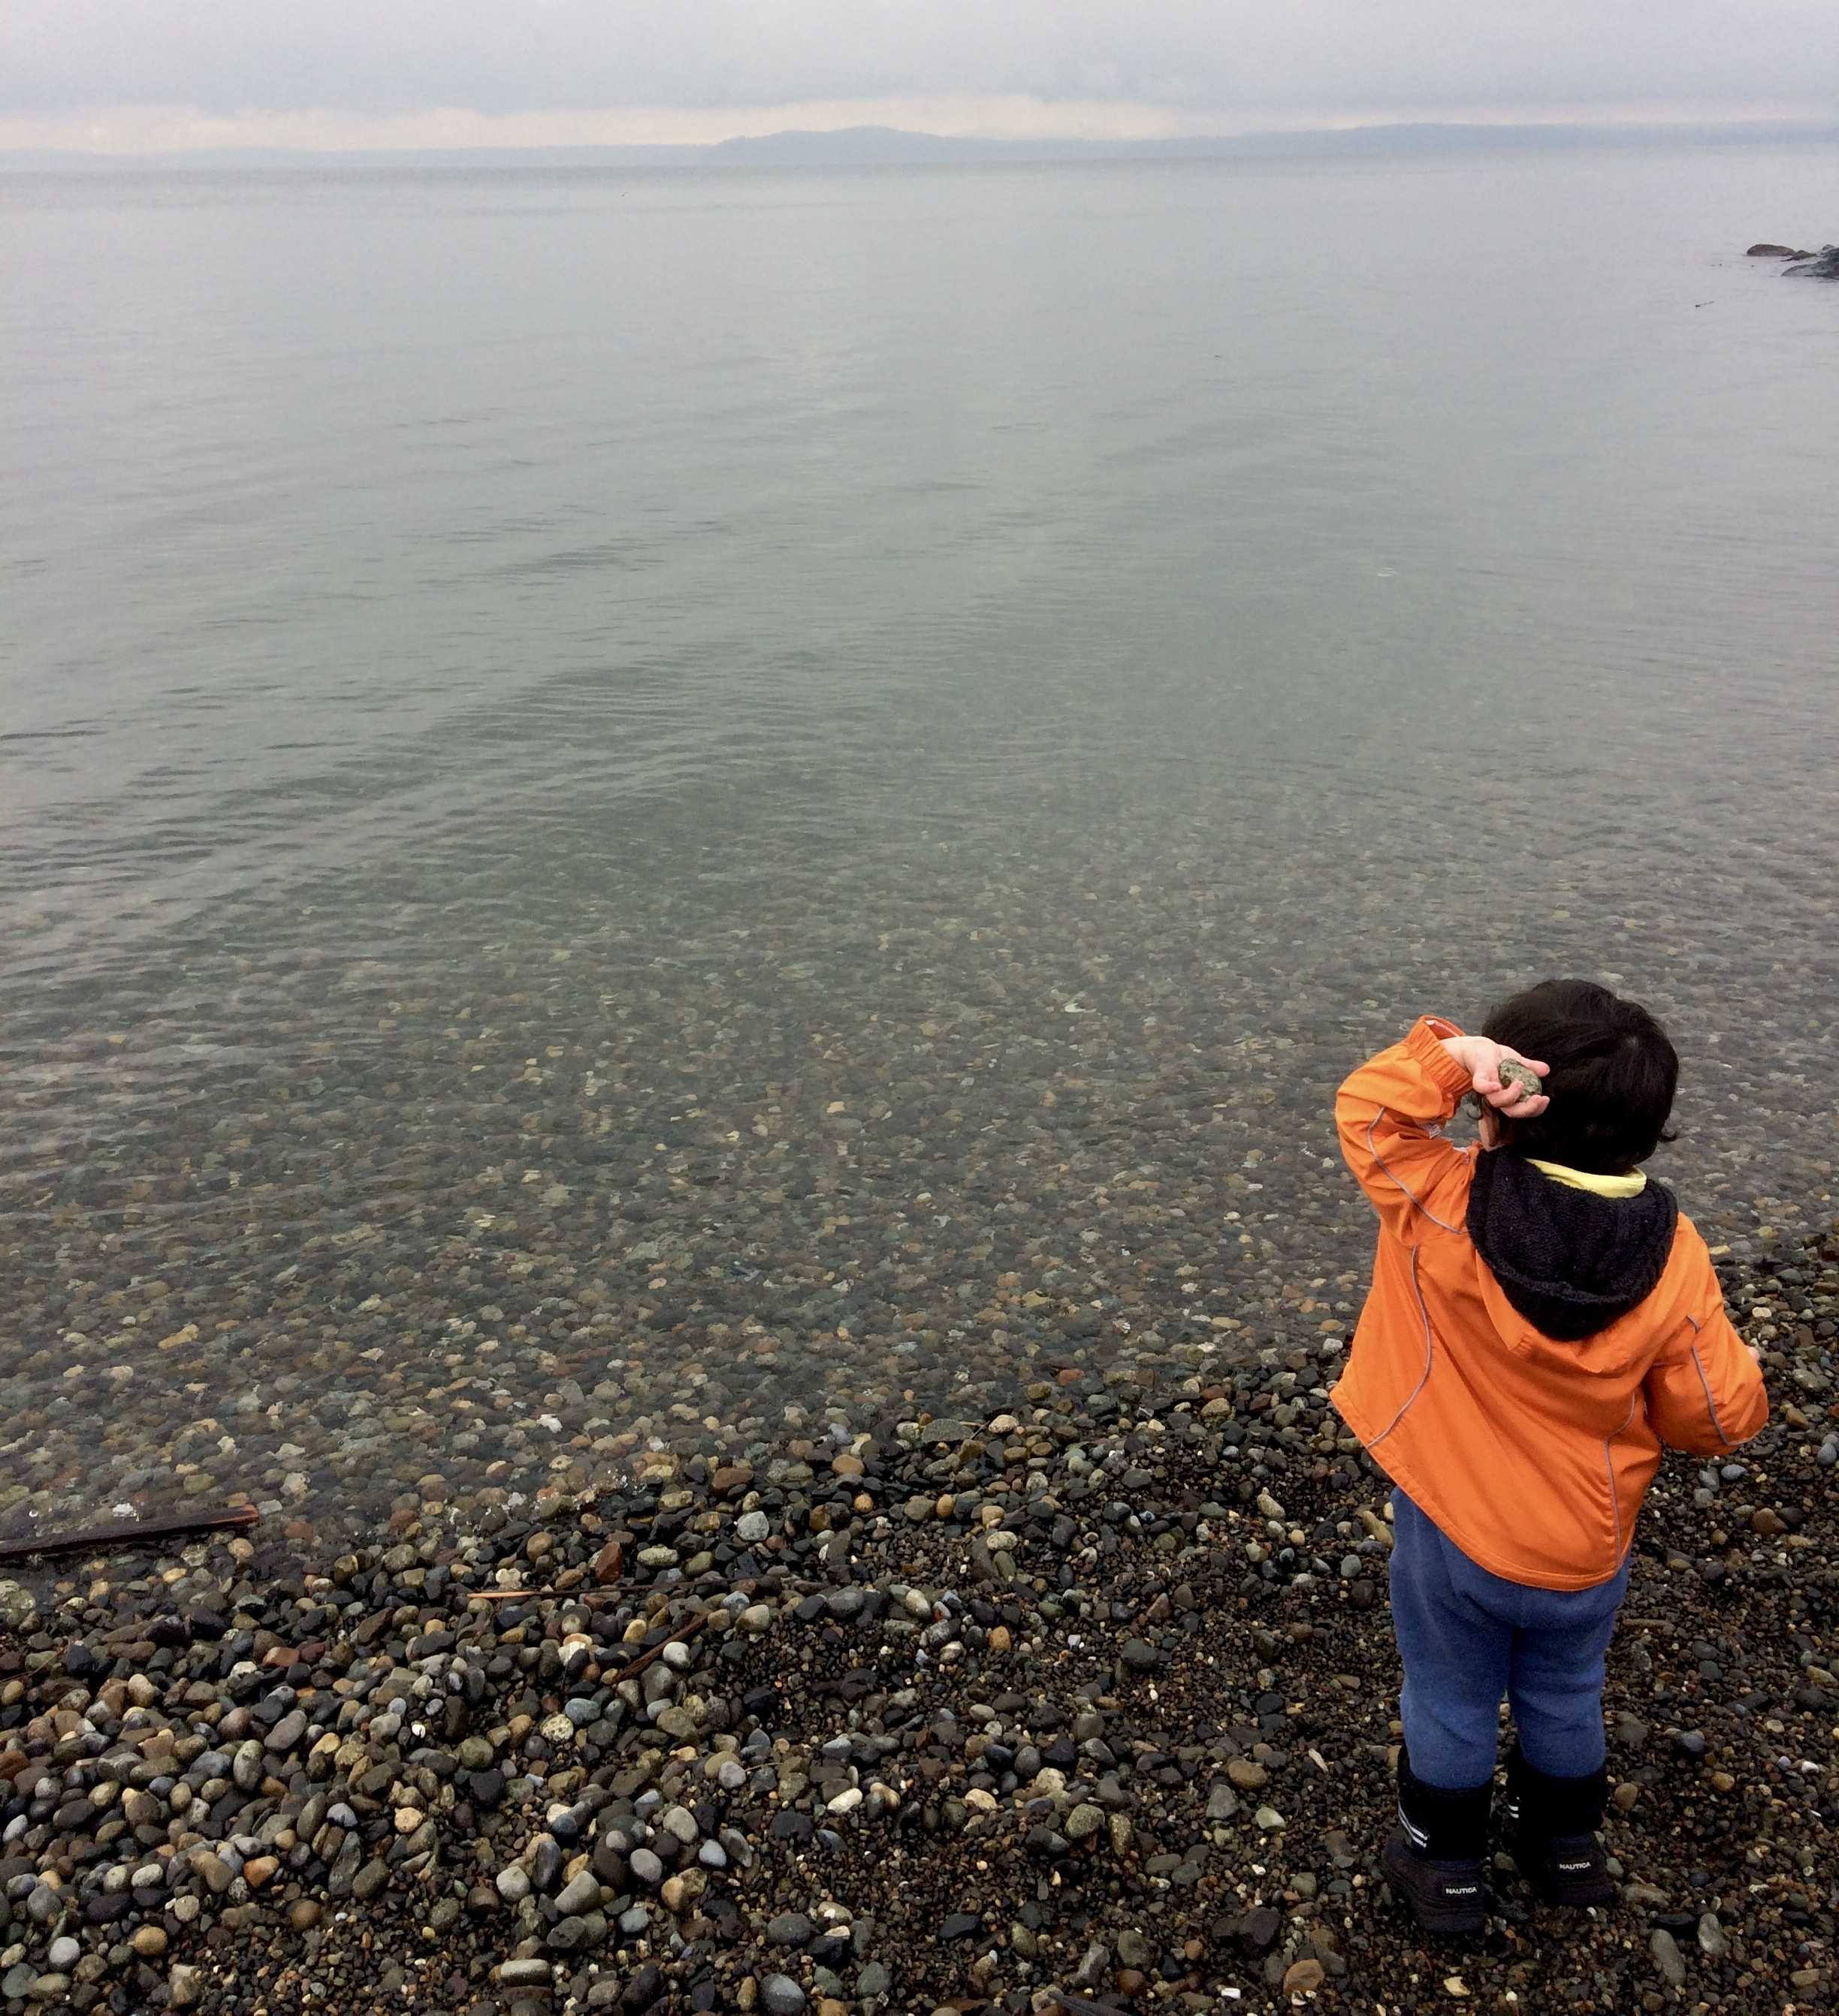 Throwing rocks in the Puget Sound, Seattle.